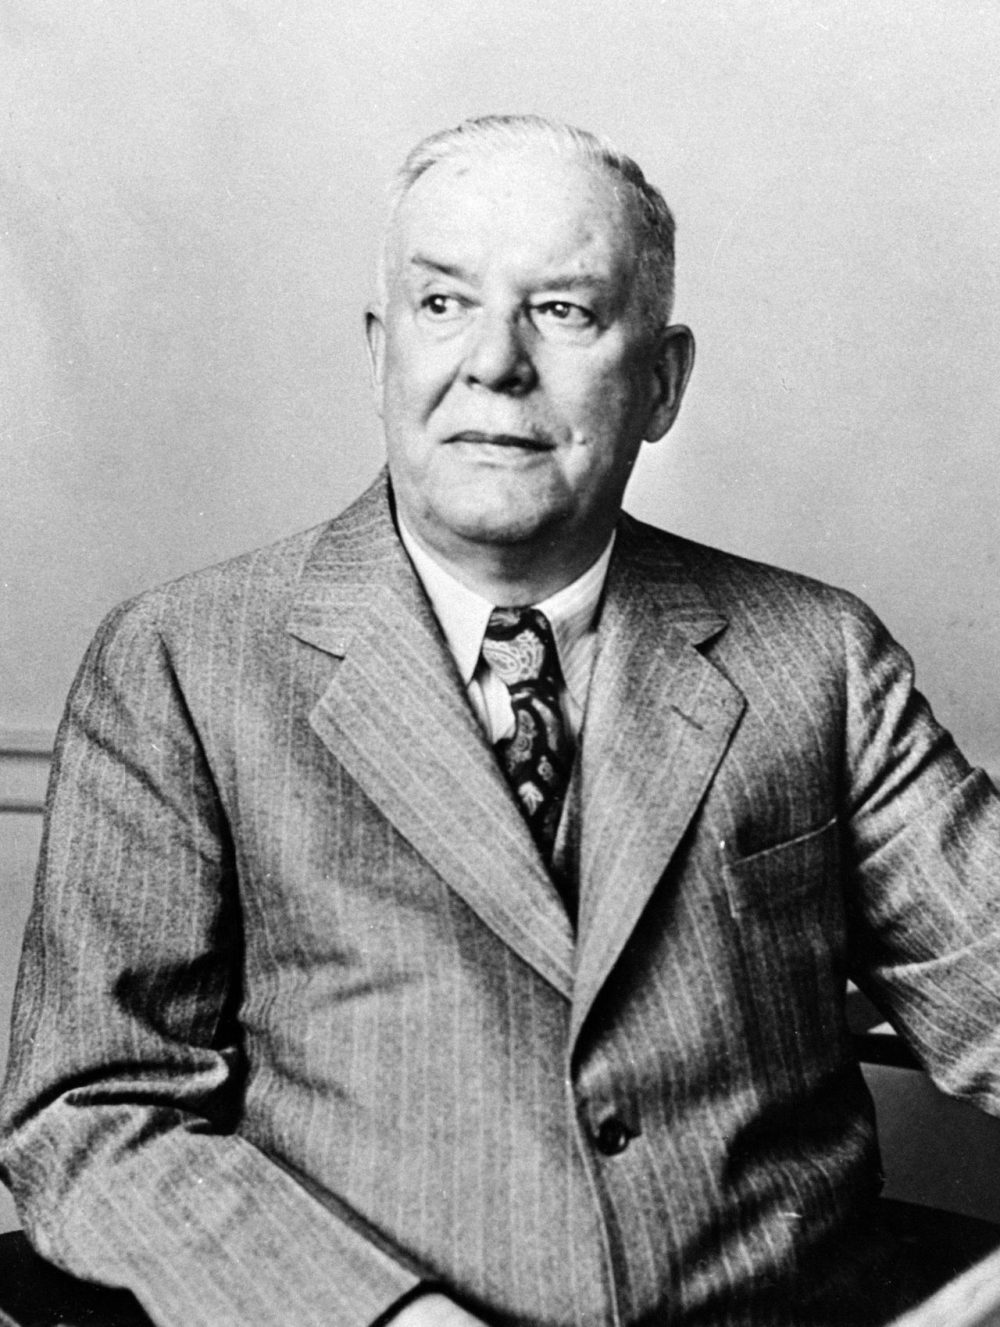 Poetry and National book award winner, Wallace Stevens in 1951. (AP)